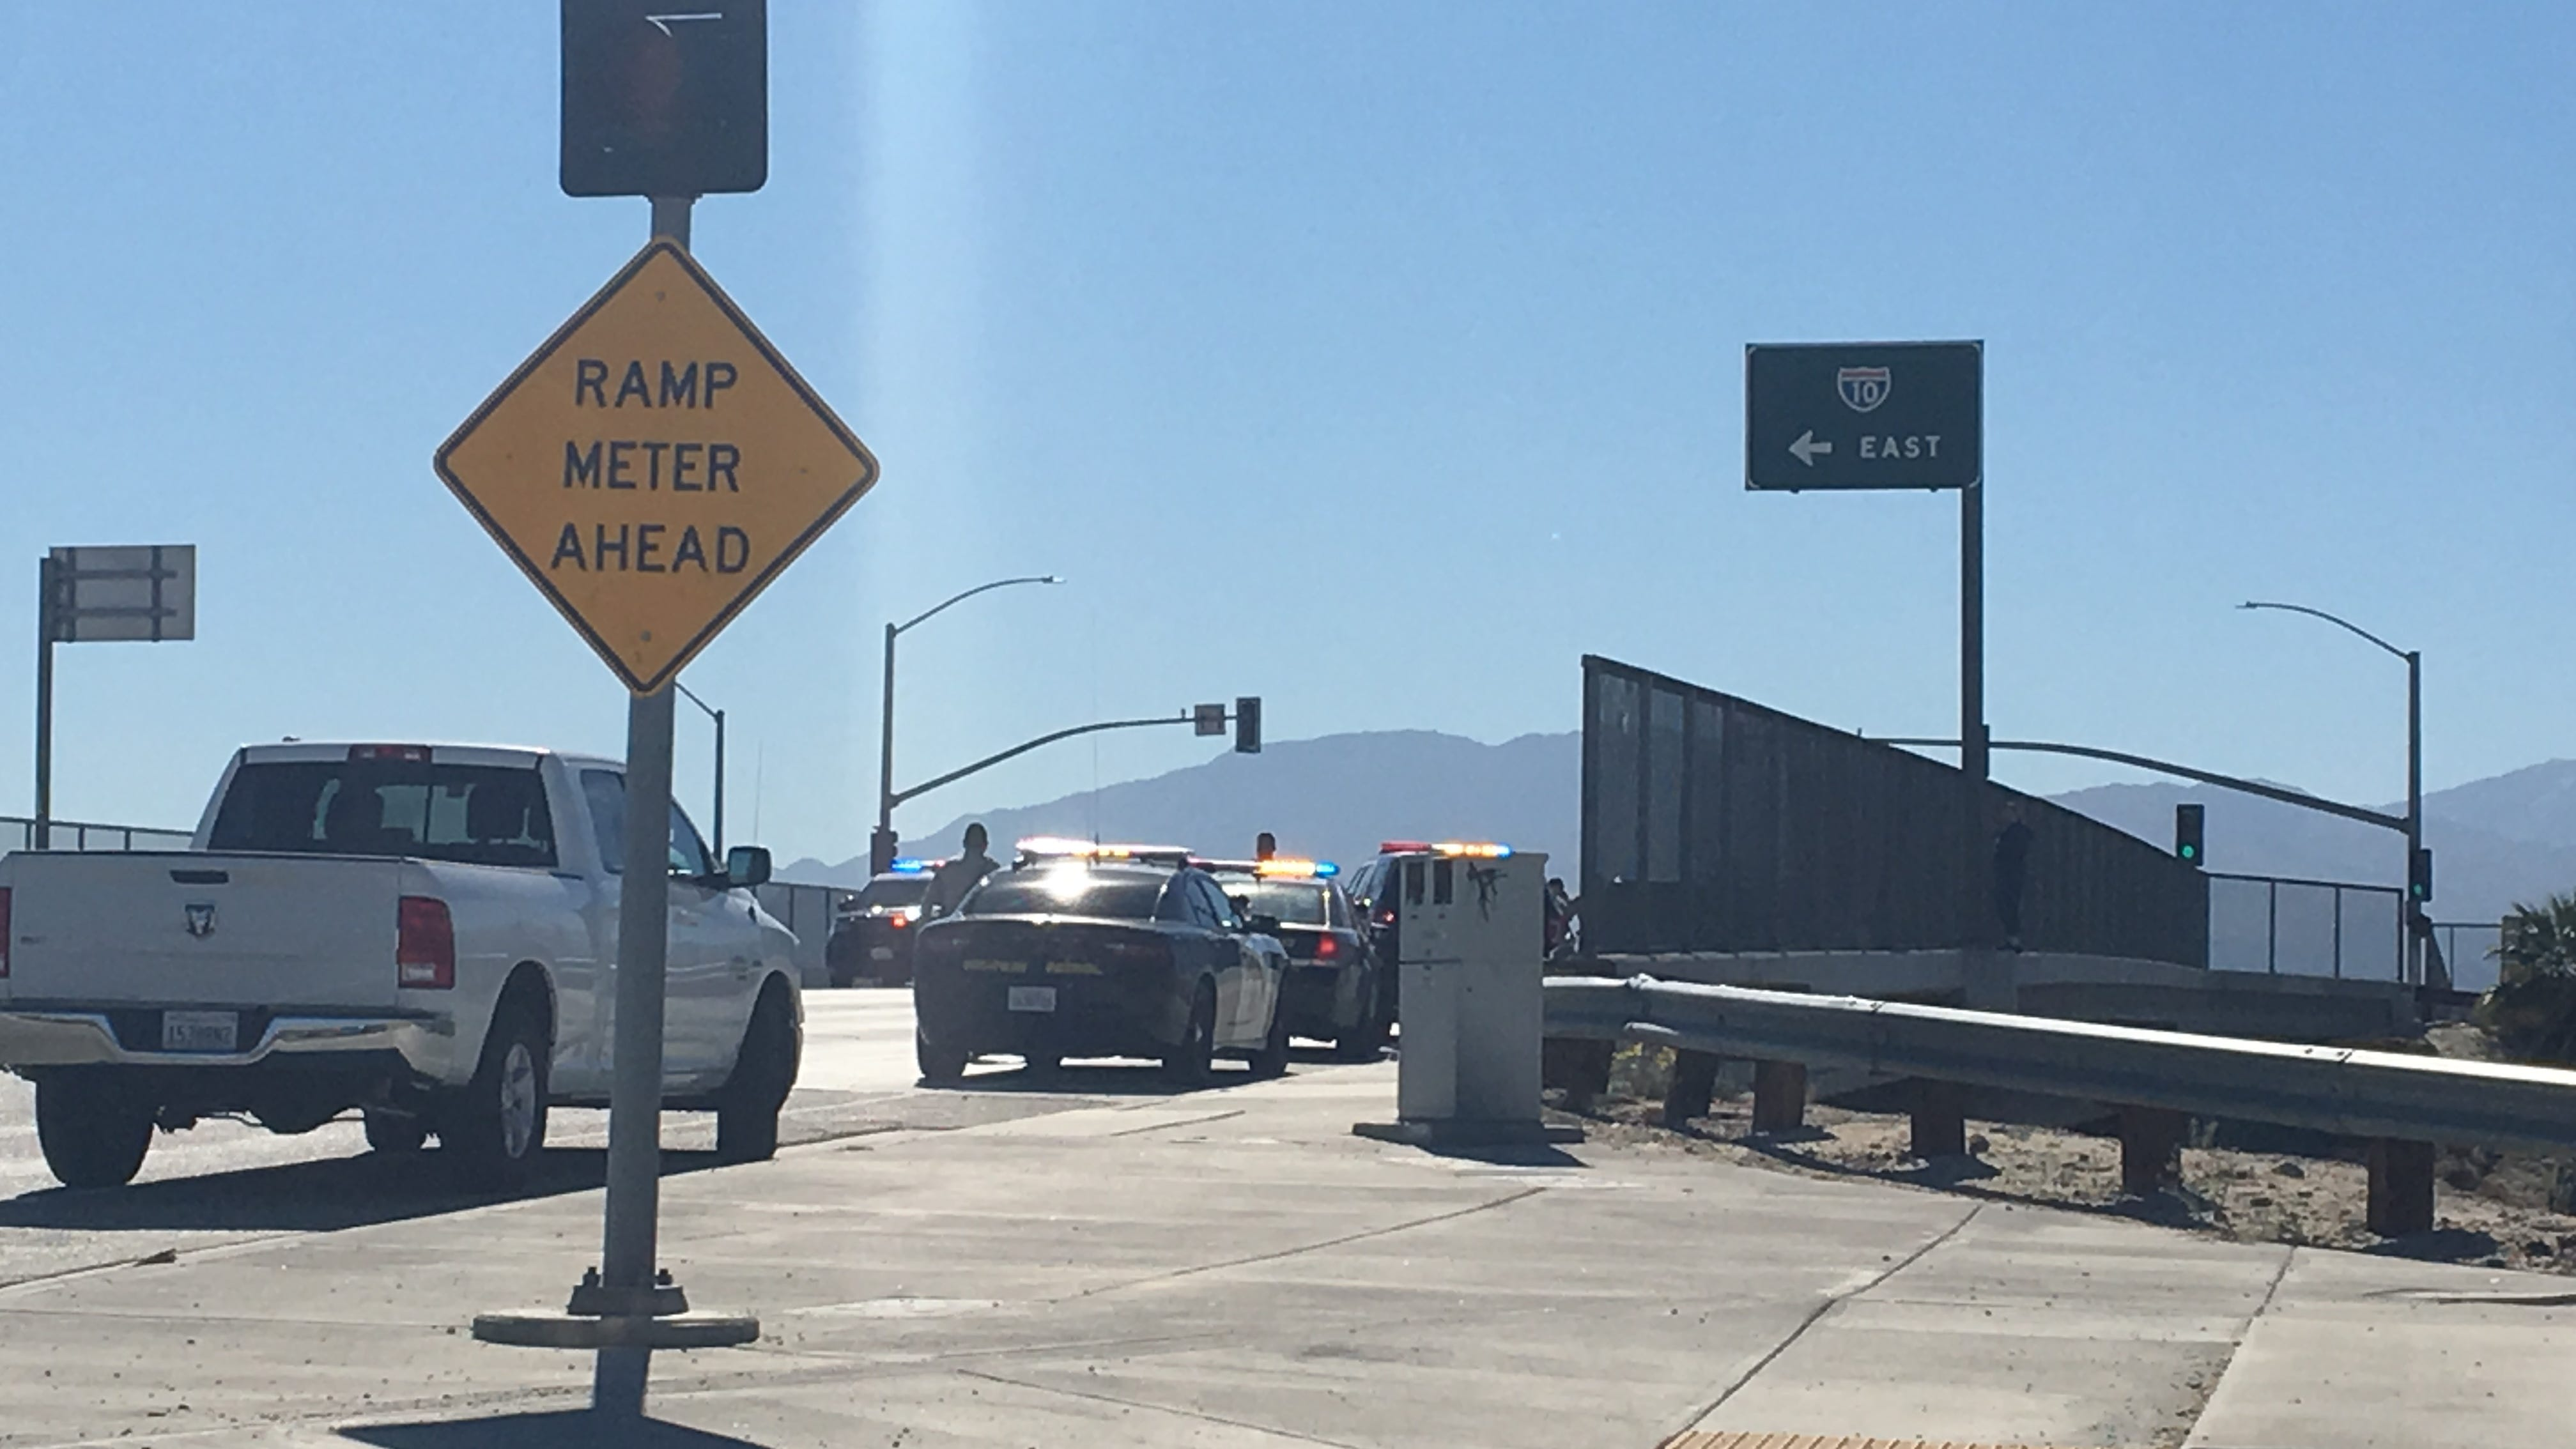 Woman Agrees To Come Down From I 10 Overp Ending Standoff That Delayed Freeway Traffic